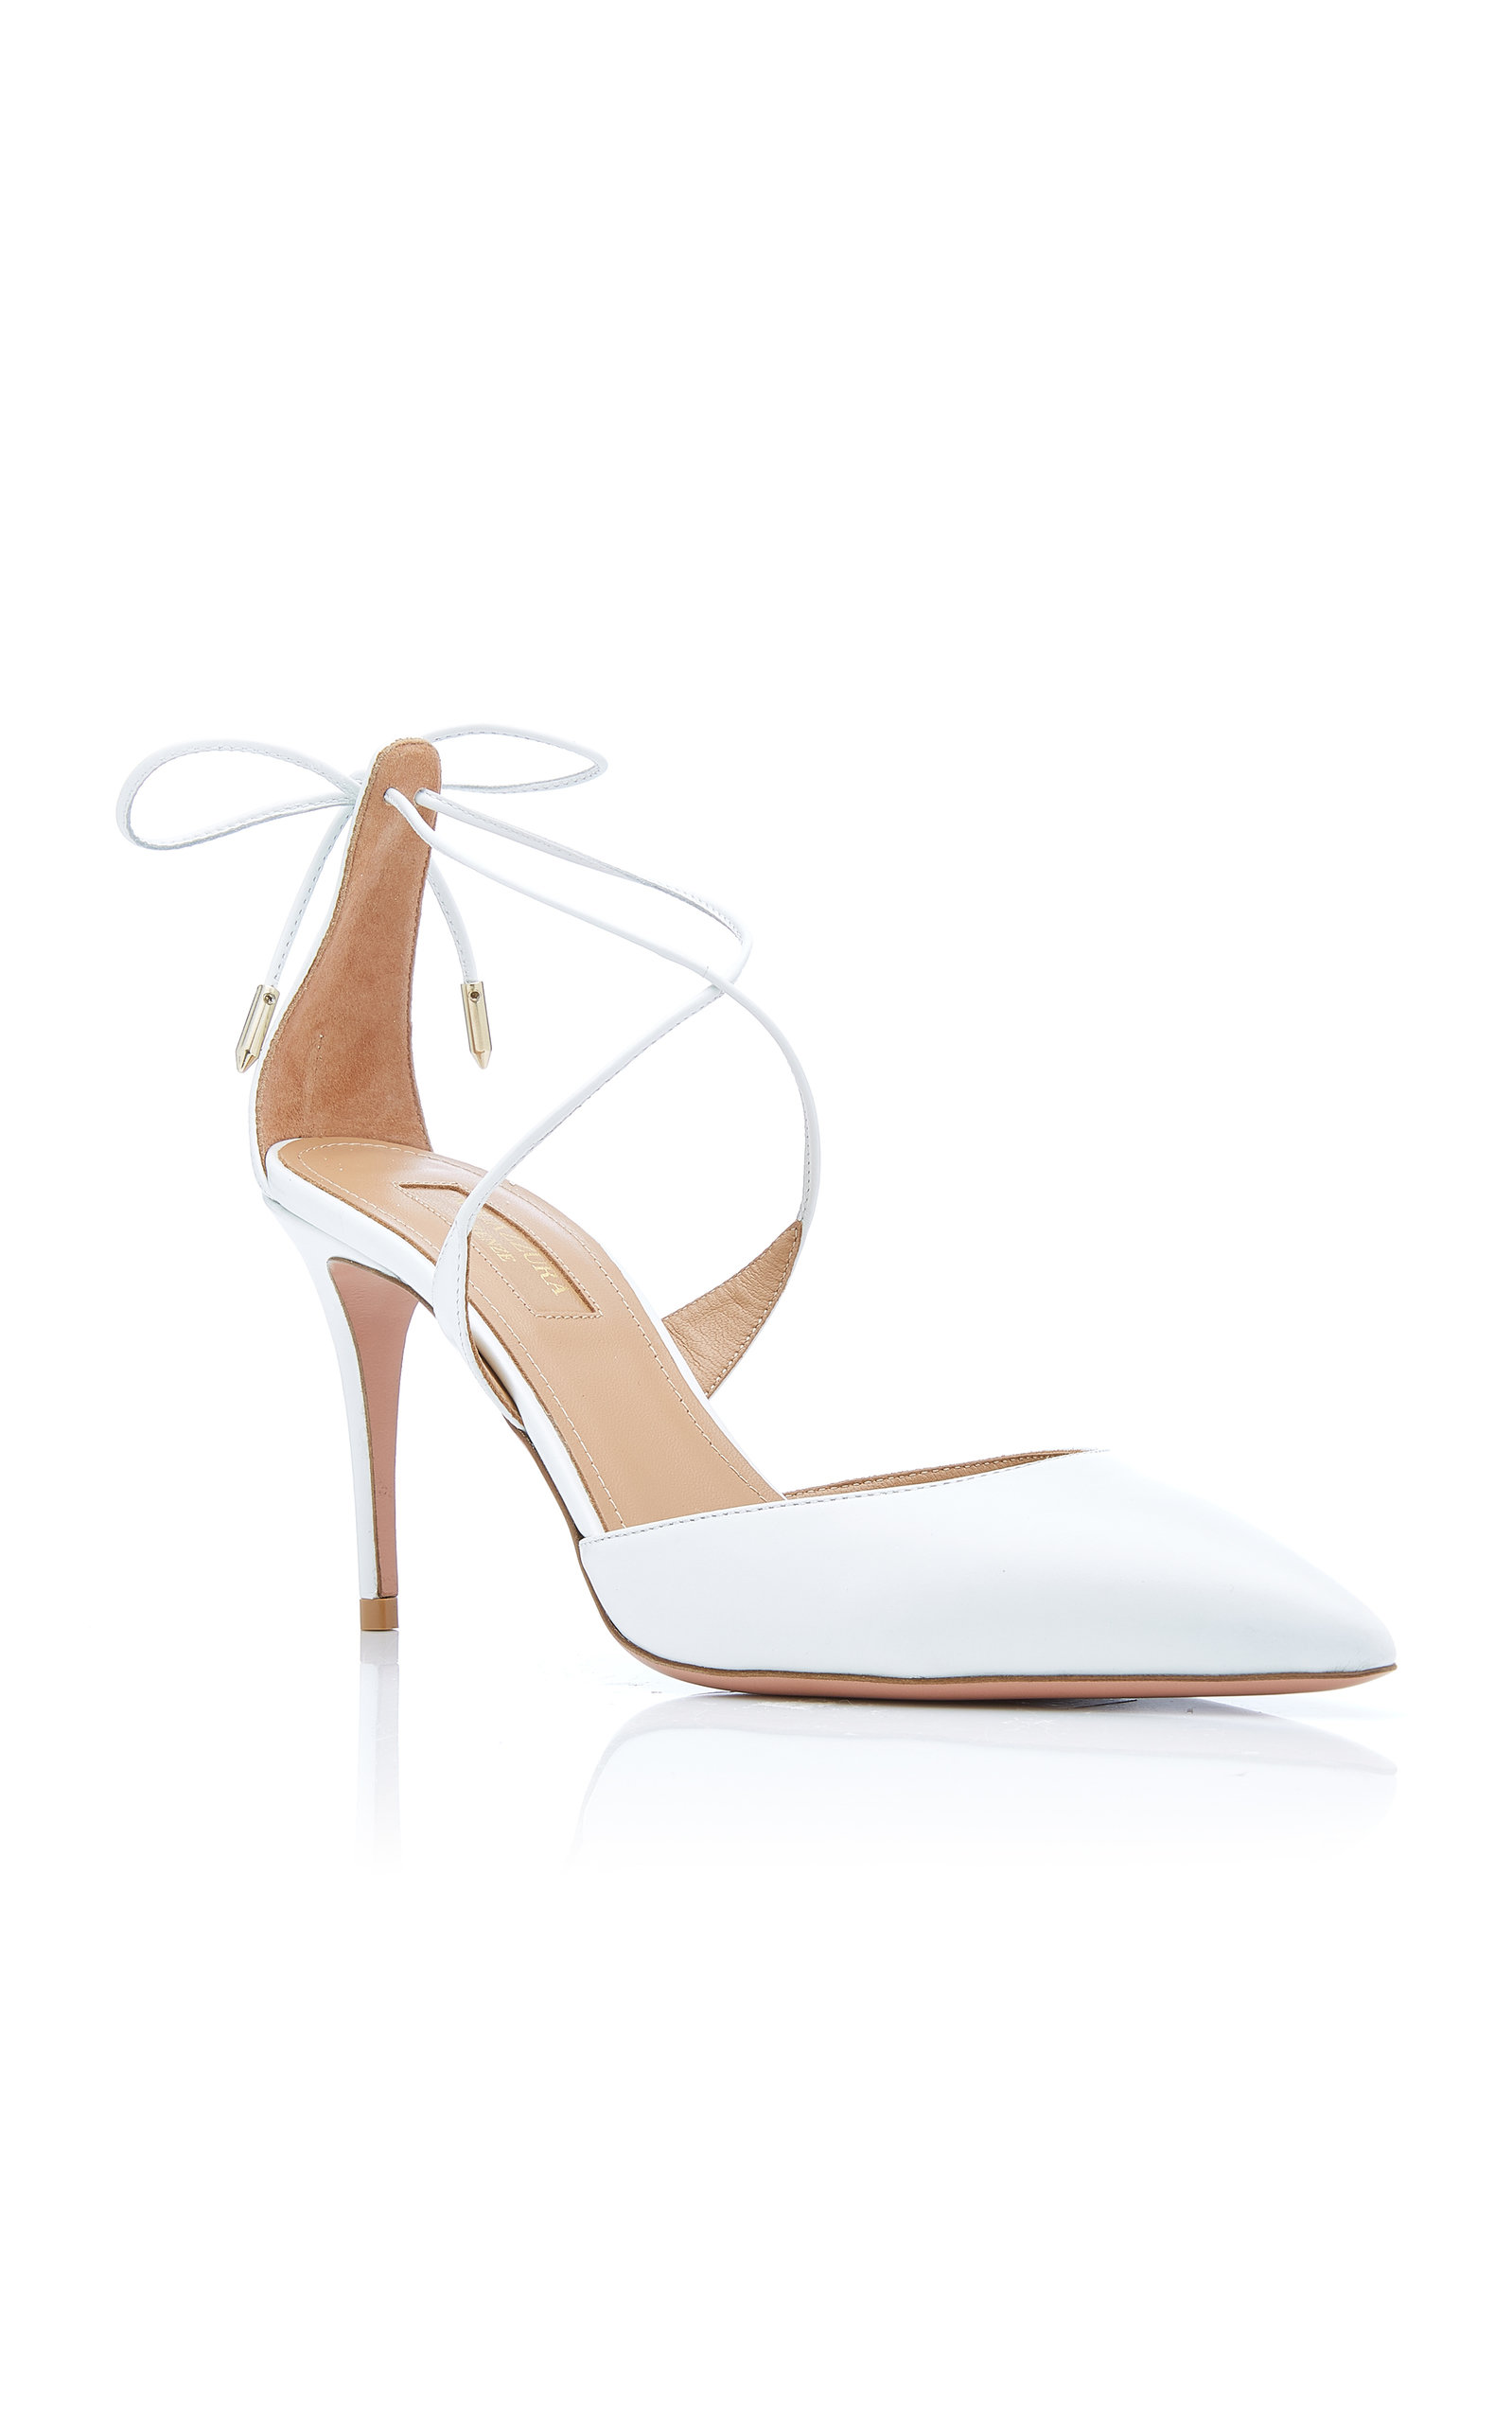 85Wedding Ideas Leather Pump Matilde Very Aquazzura v8nymOwN0